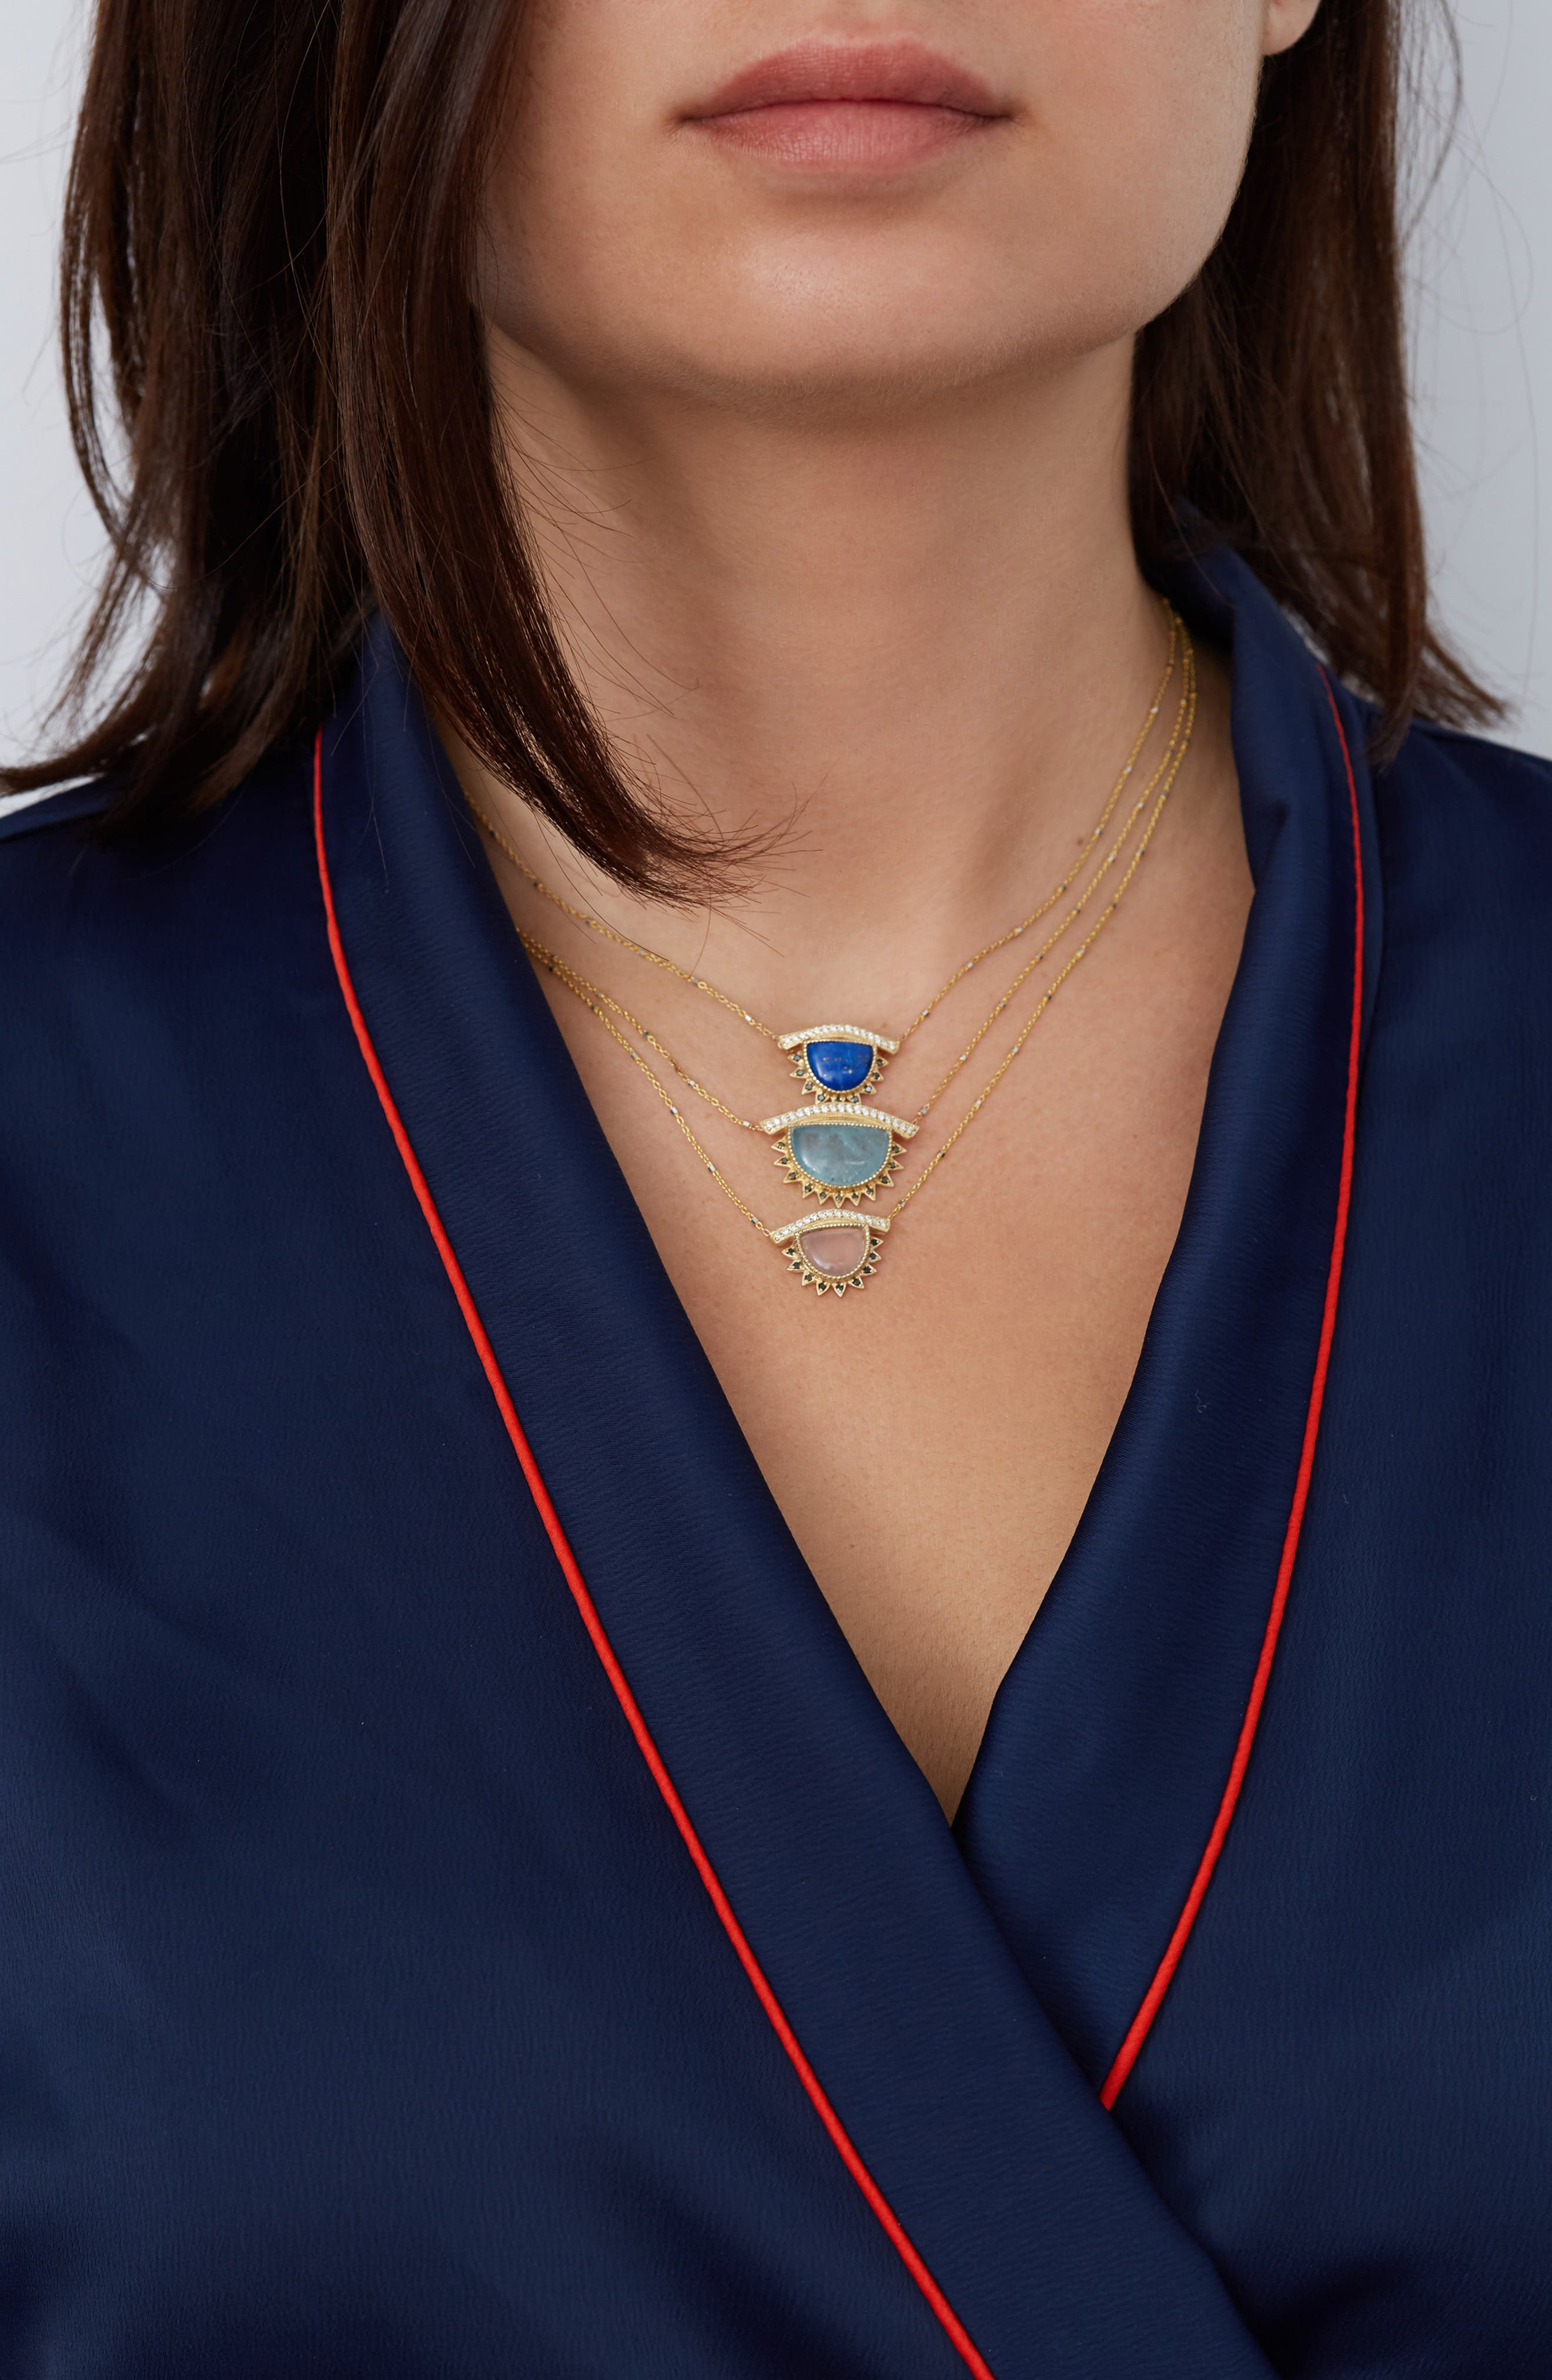 Inspire & Calm Small Third Eye Necklace,                             Alternate thumbnail 3, color,                             YELLOW GOLD